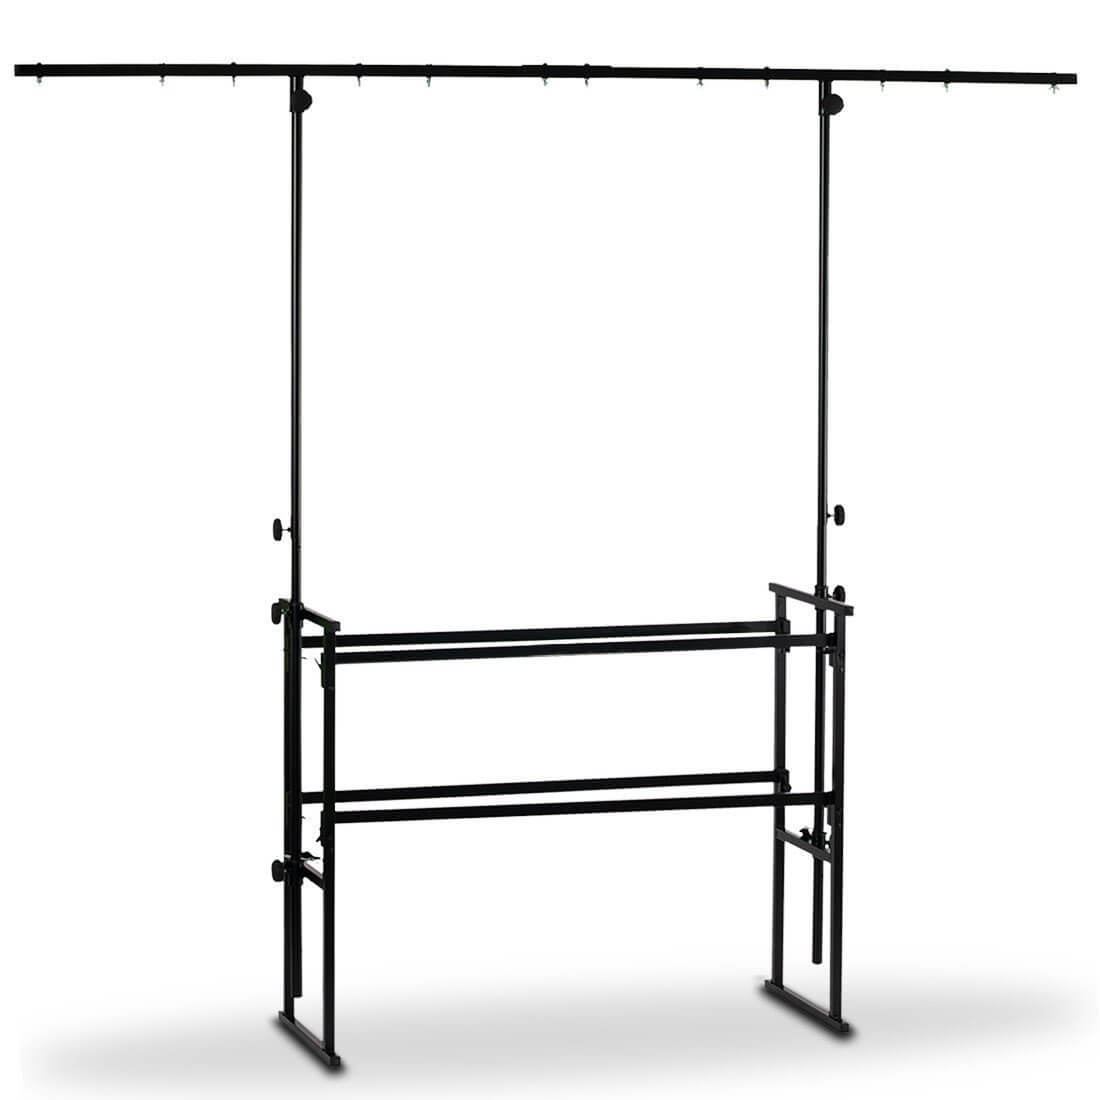 Simply Sound & lighting 4ft DJ Deck Stand Metal Overhead Lighting Bar